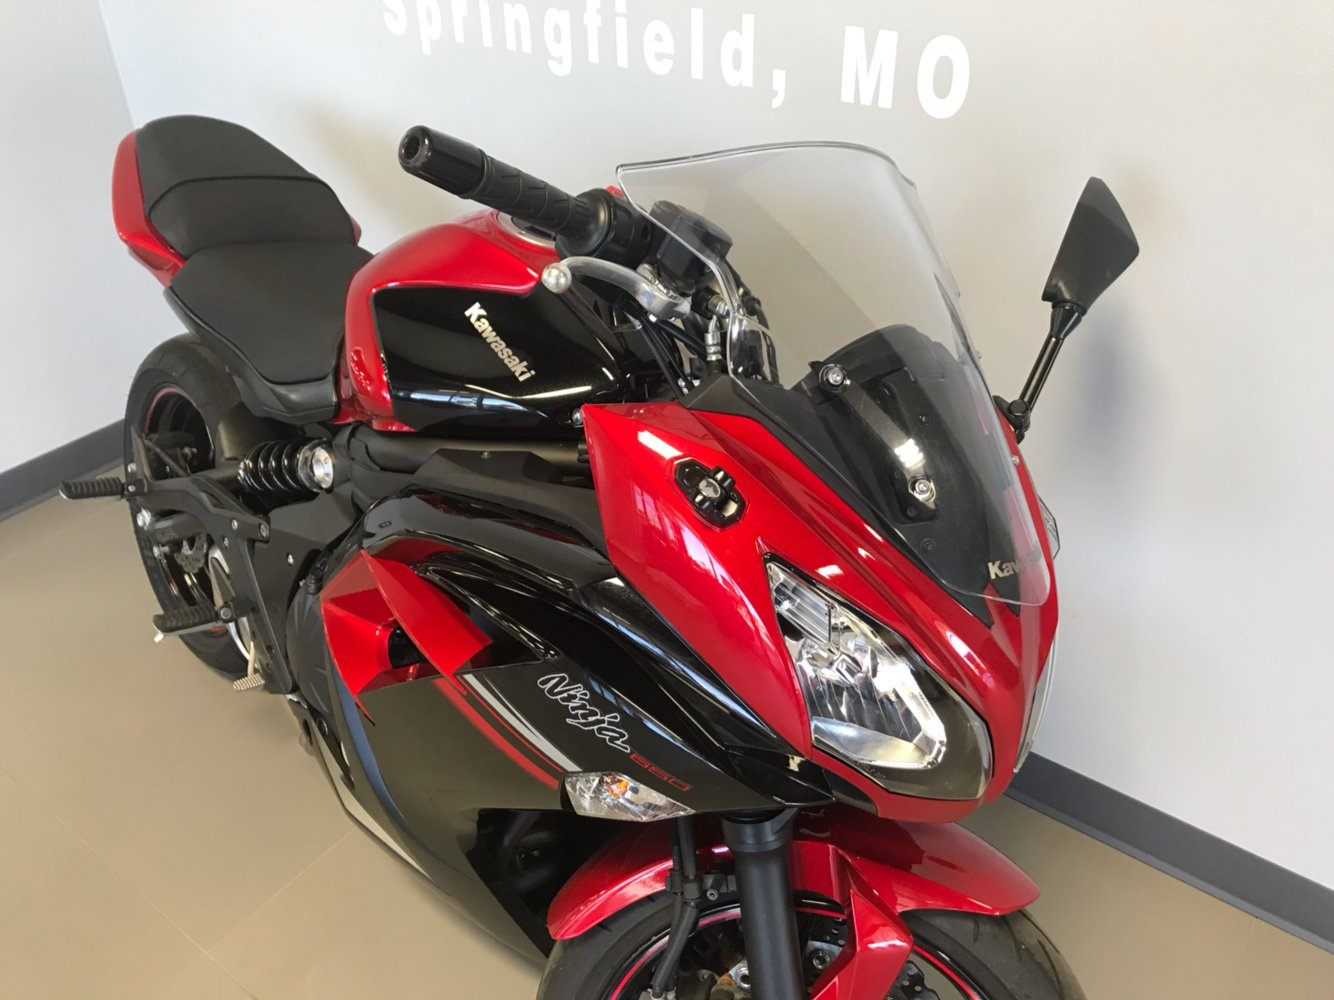 2016 Kawasaki Ninja 650 in Springfield, Missouri - Photo 10